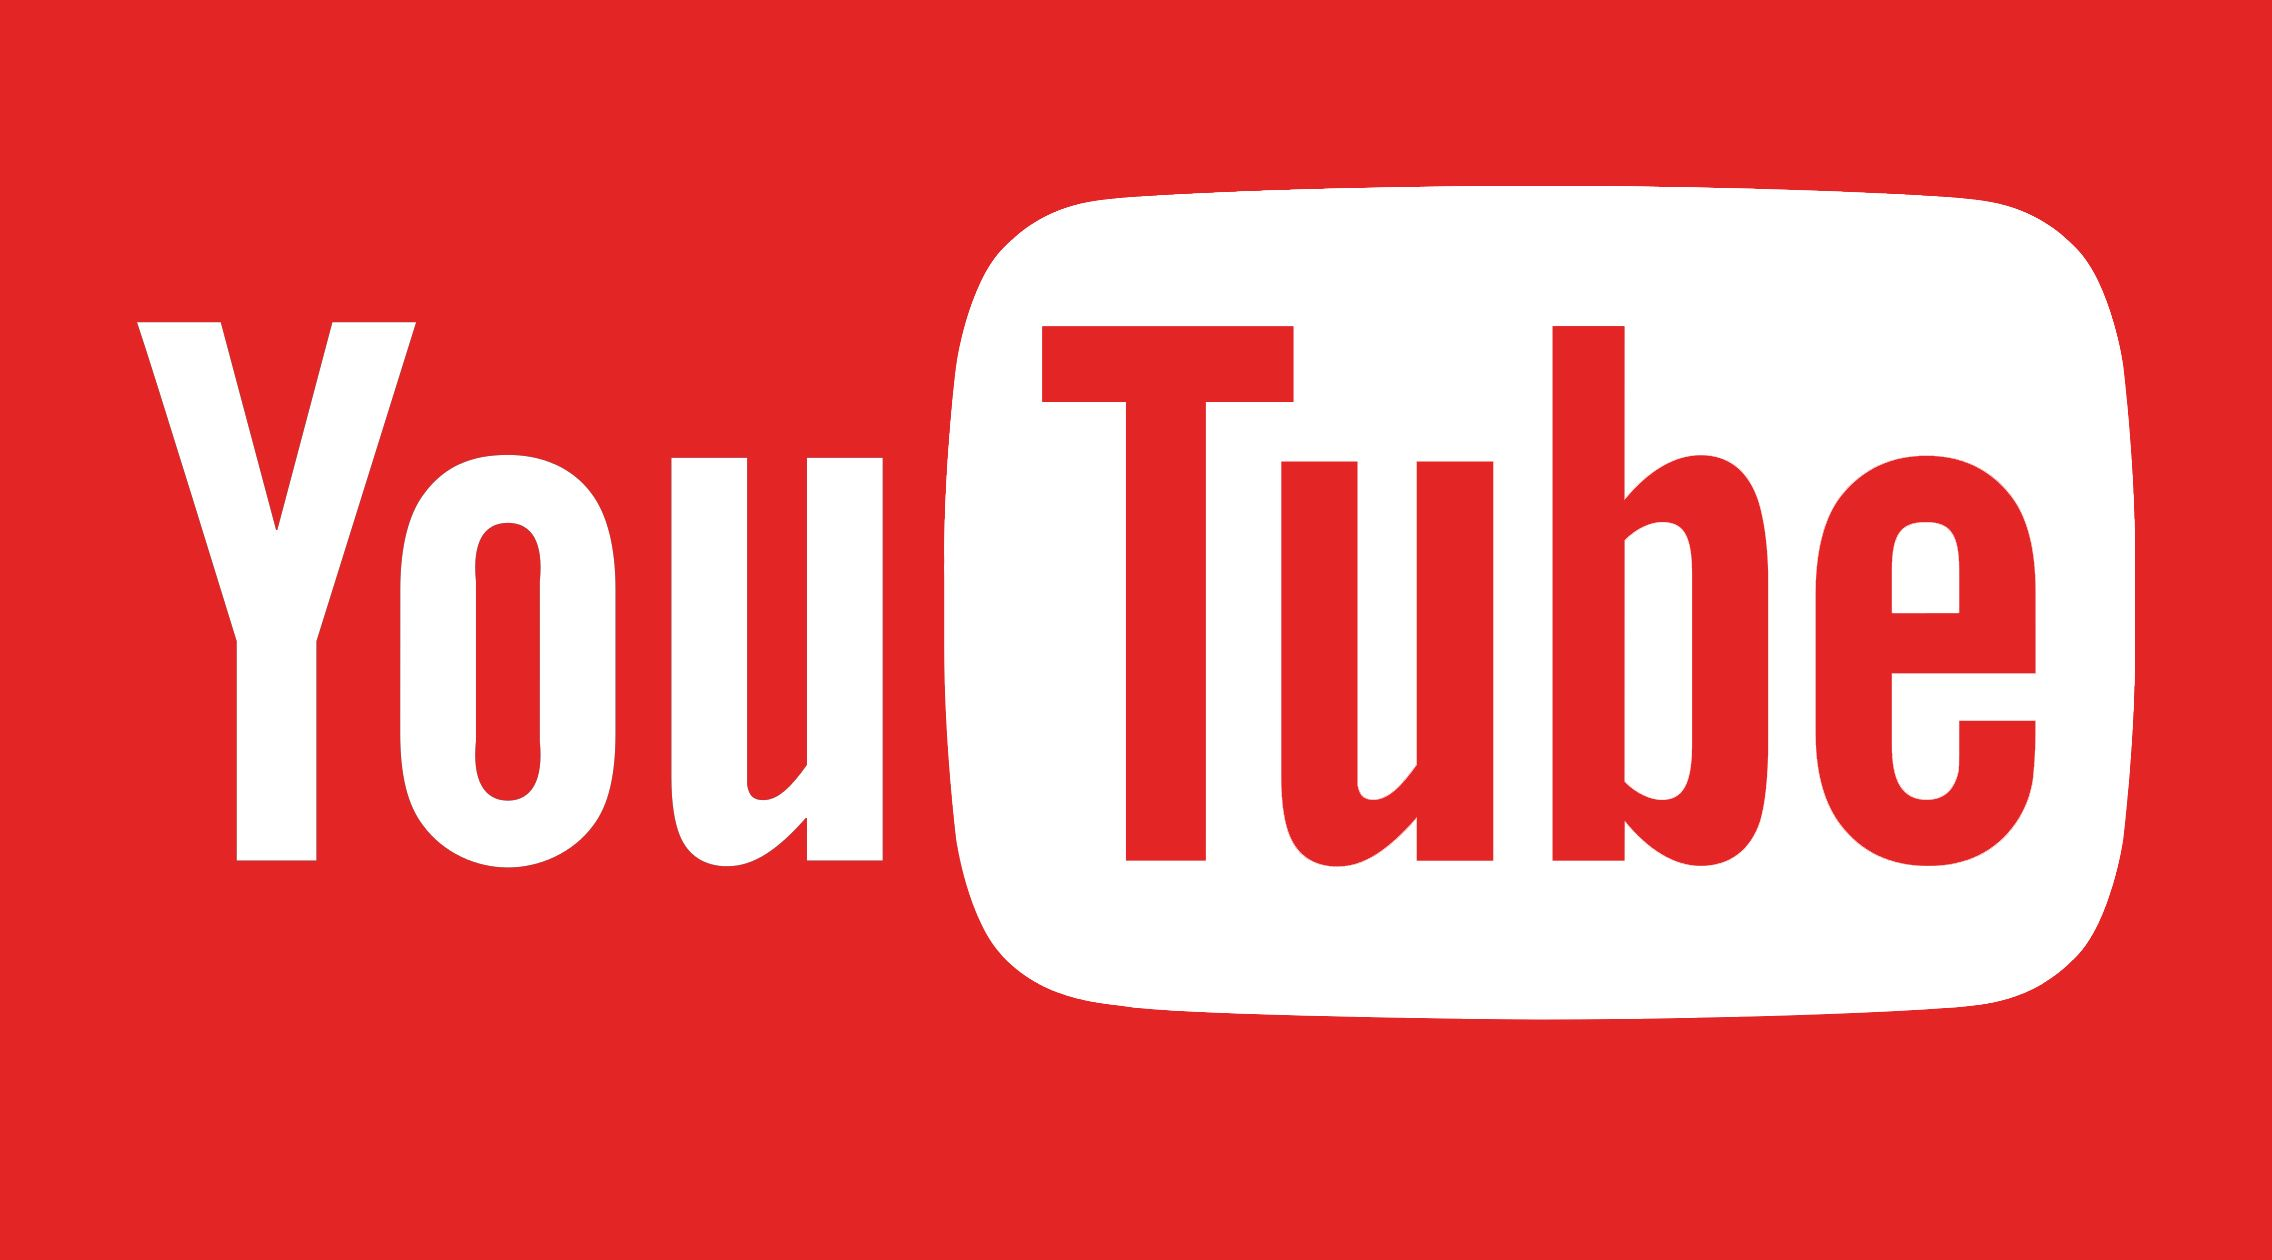 YouTube Logo - YouTube Logo, YouTube Symbol, Meaning, History and Evolution